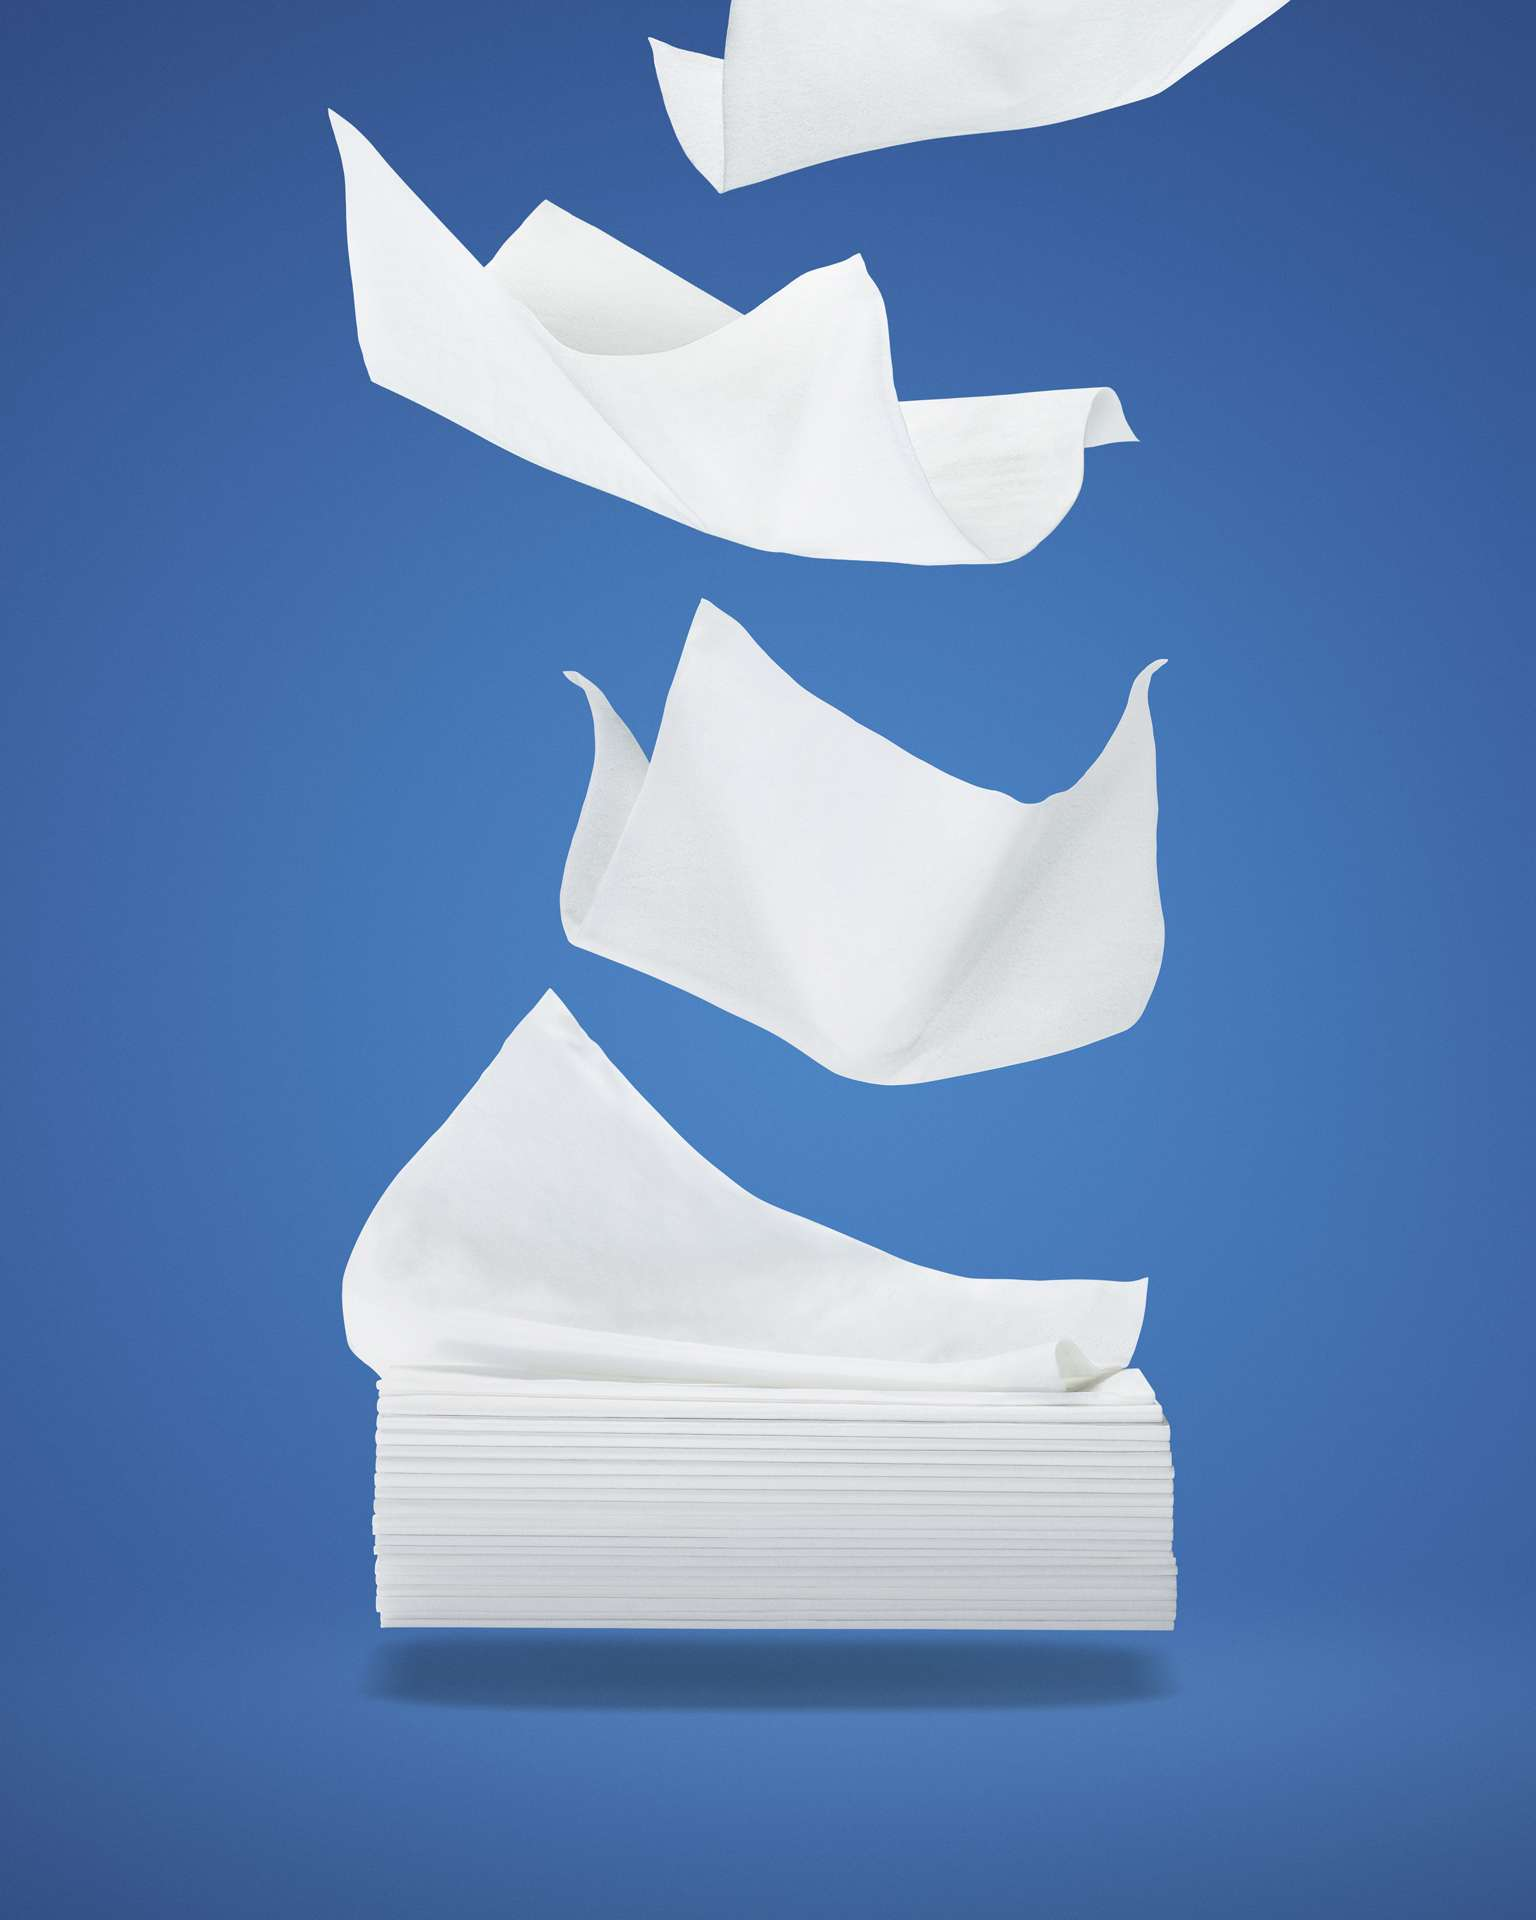 white tissues falling from the sky forming the shape of a box on blue background by Mathieu Lévesque for Uniprix